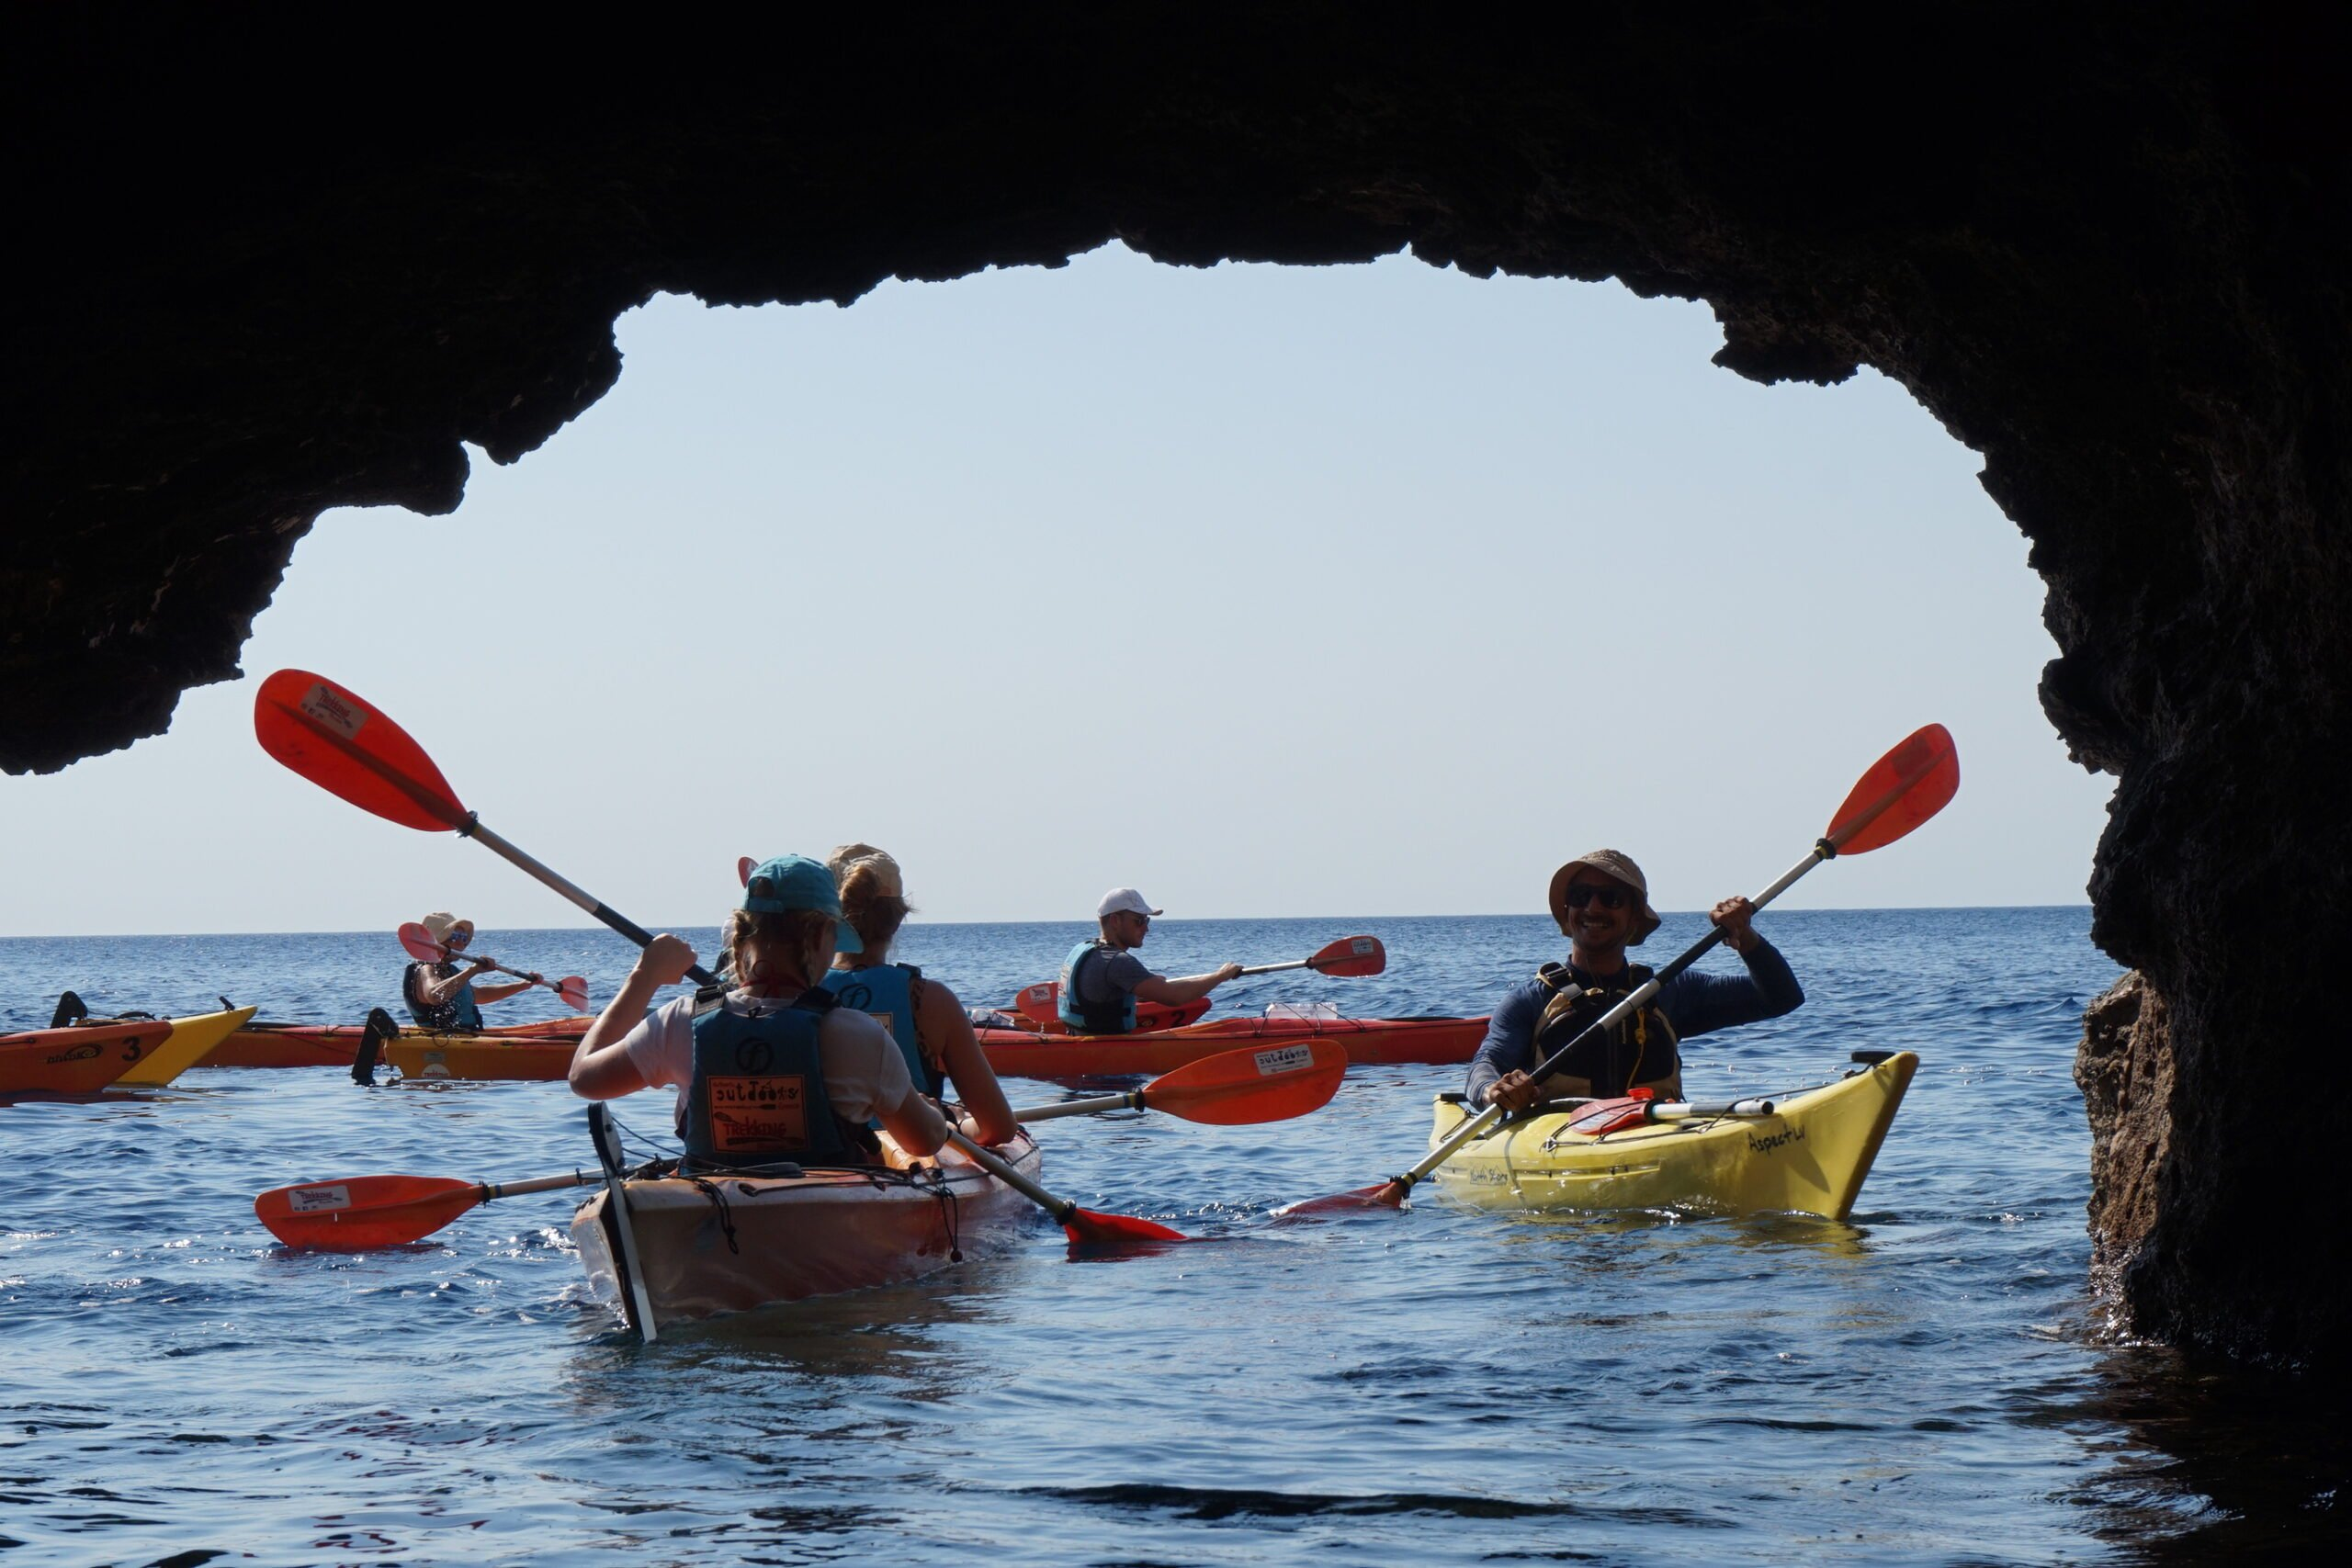 Kayaking Activity In Our 9 Day Island Hopping From Rhodes